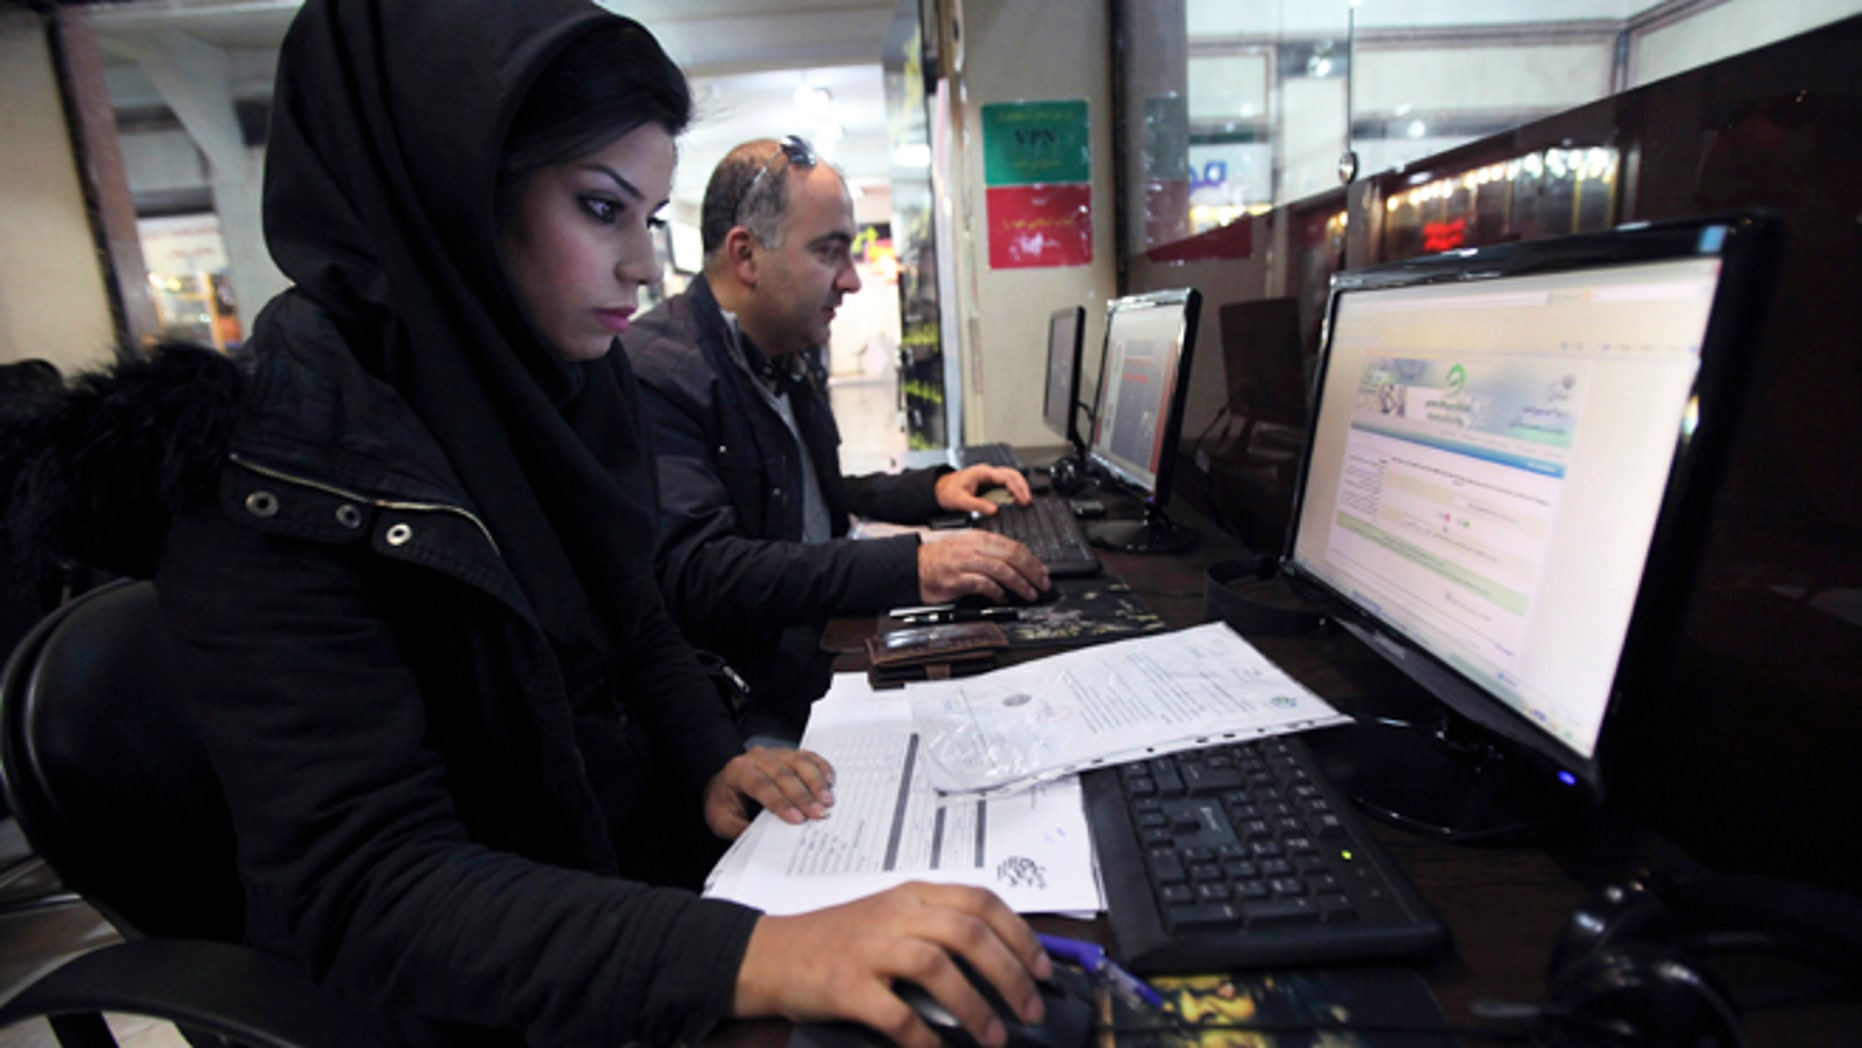 Jan. 6, 2013: Iranians surf the web in an internet cafe at a shopping center, in central Tehran, Iran. Iran's police chief says the Islamic Republic is developing new software to control social networking sites.